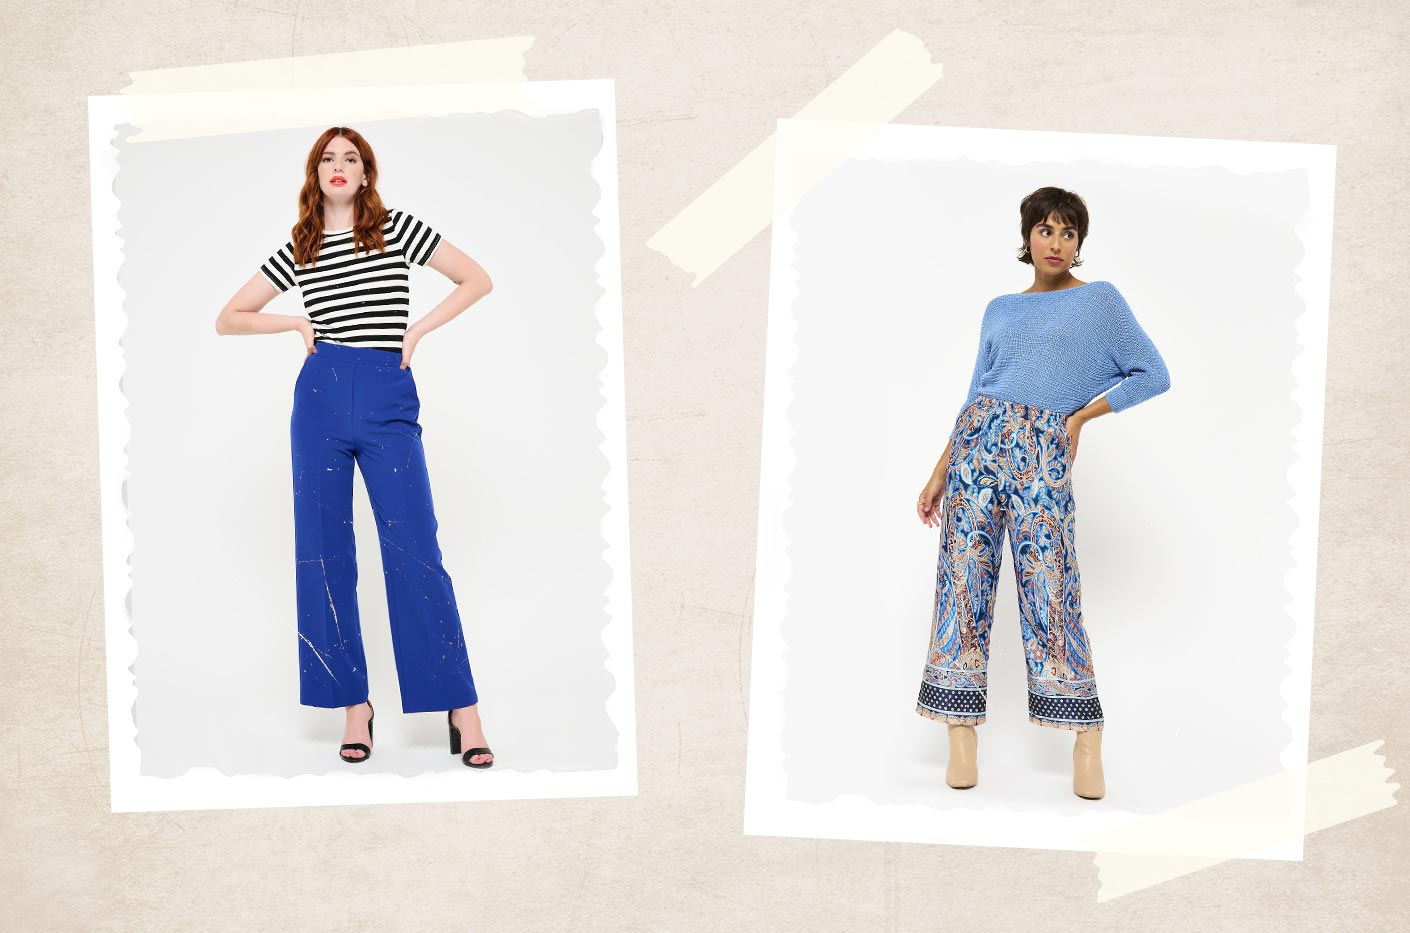 Blue wide-leg pants with retro print styled with a blue long sleeved cardigan and nude boots. Plain blue wide-leg pants styled with a striped t-shirt and black high heels.